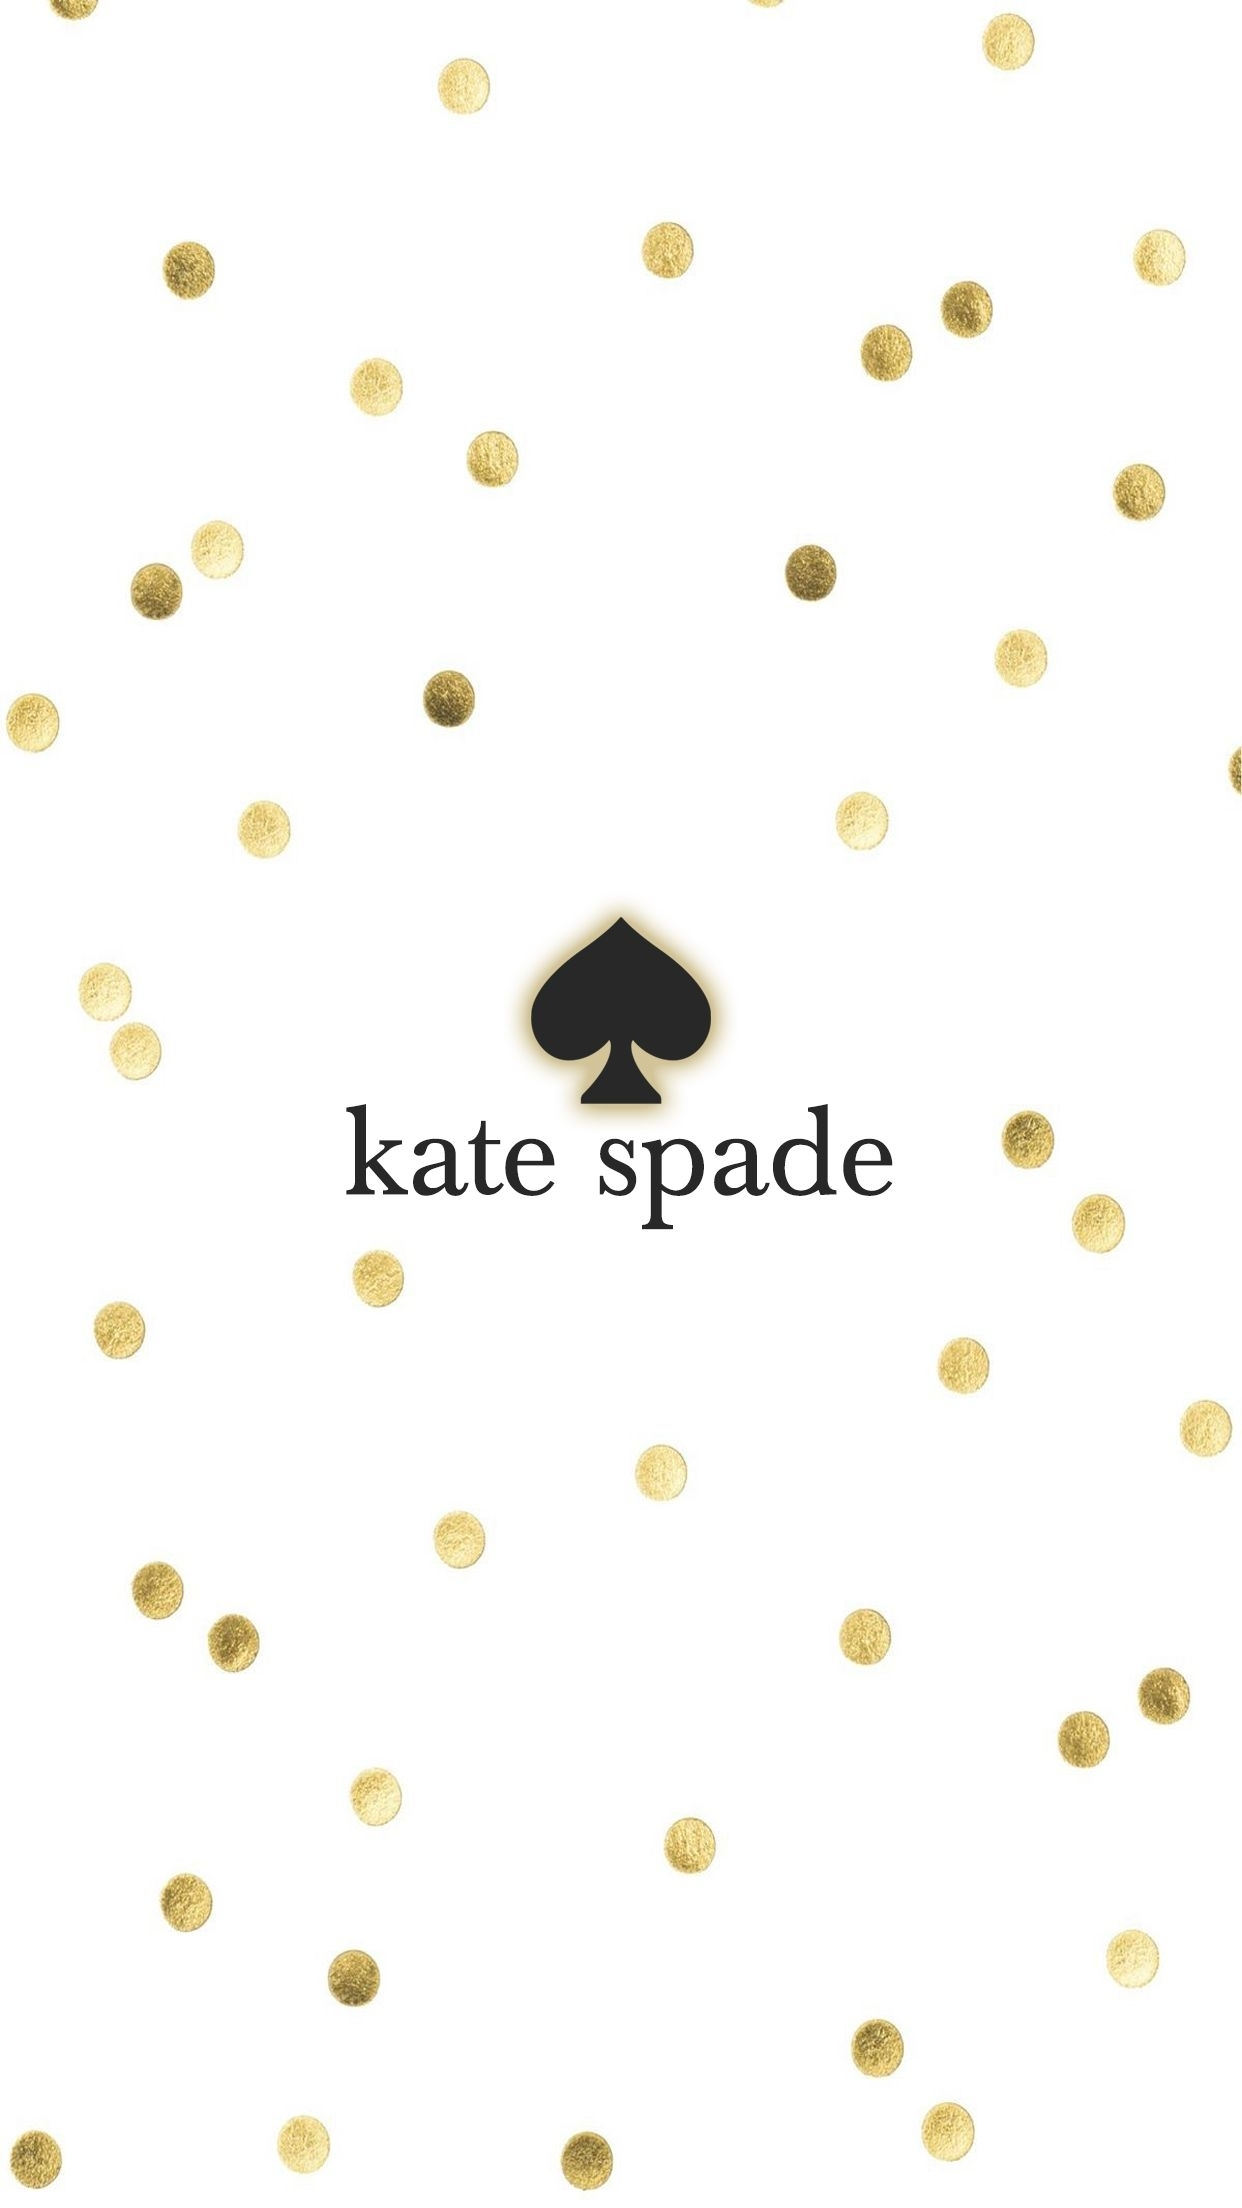 Title : kate spade gold iphone wallpaper background | wallpapers. Dimension : 1242 x 2208. File Type : JPG/JPEG